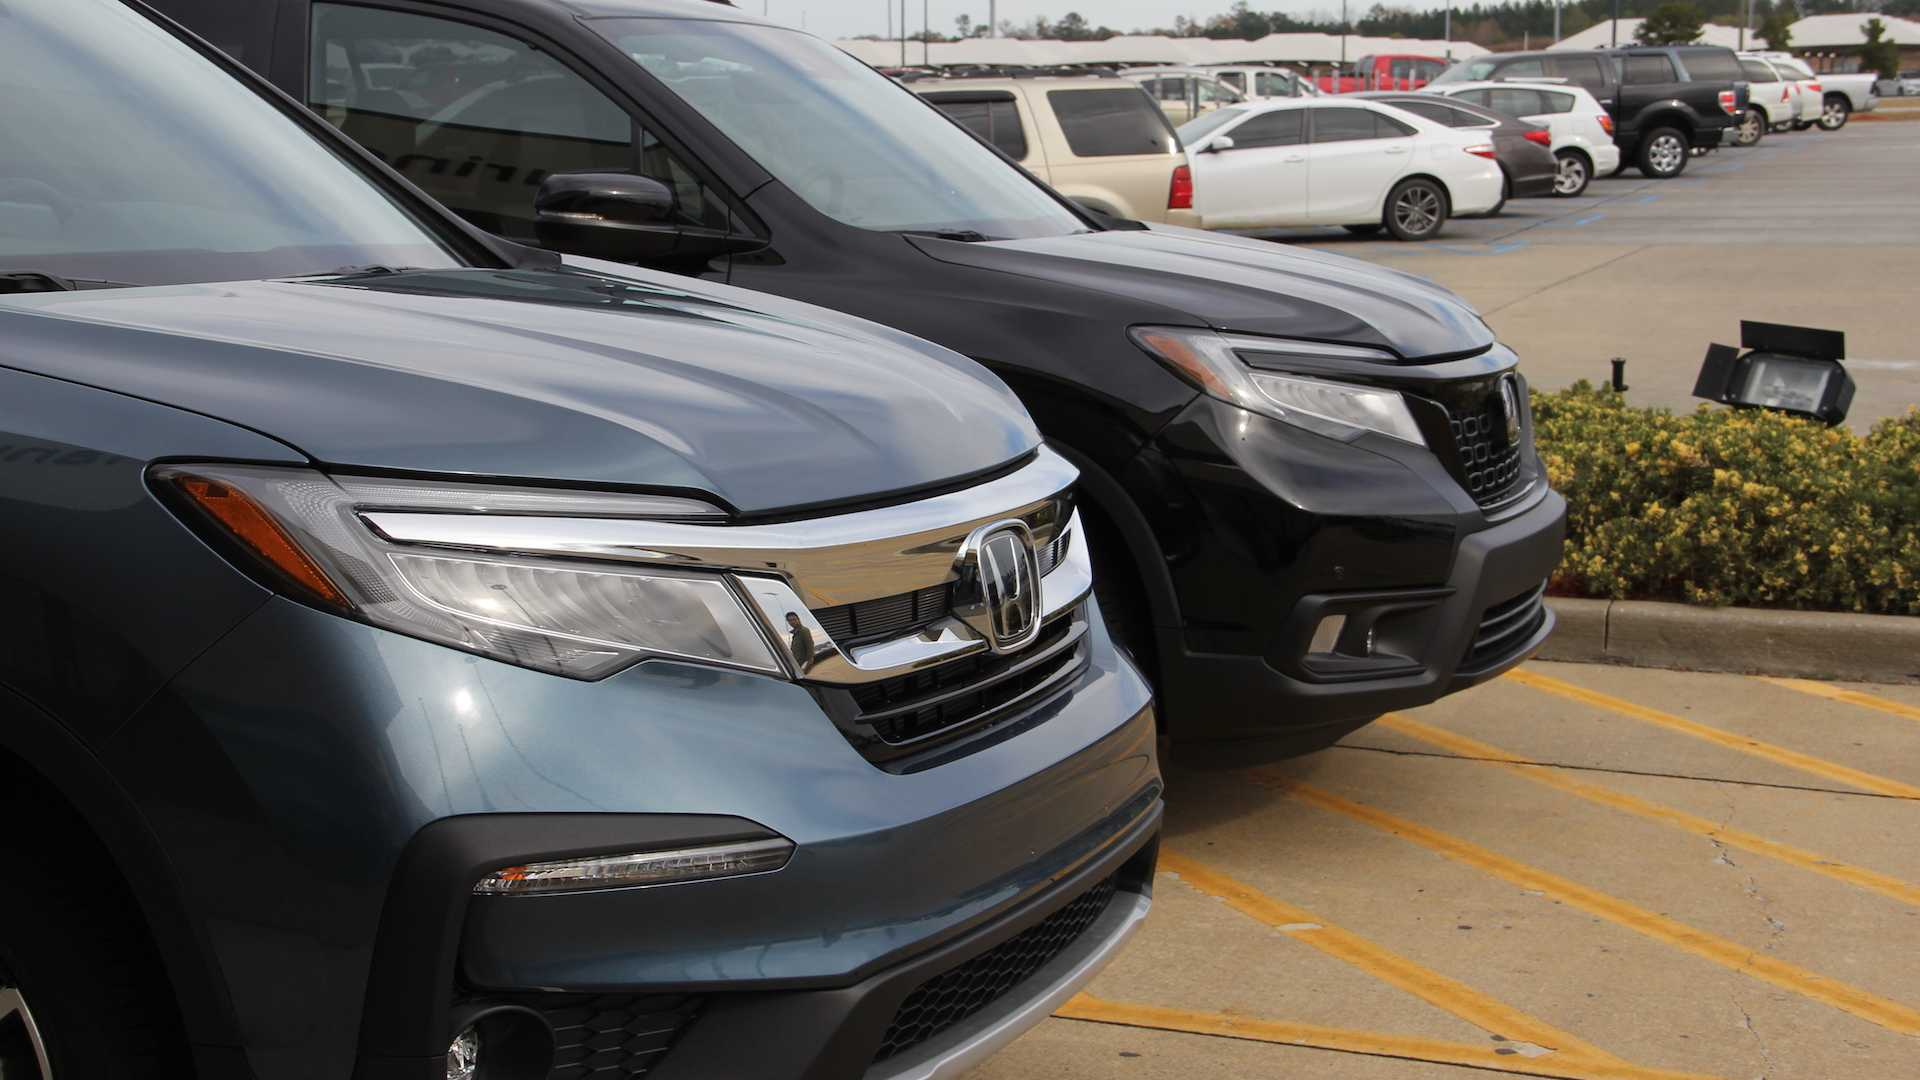 2019-honda-passport-vs-2019-honda-pilot-so-sanh-4.jpg